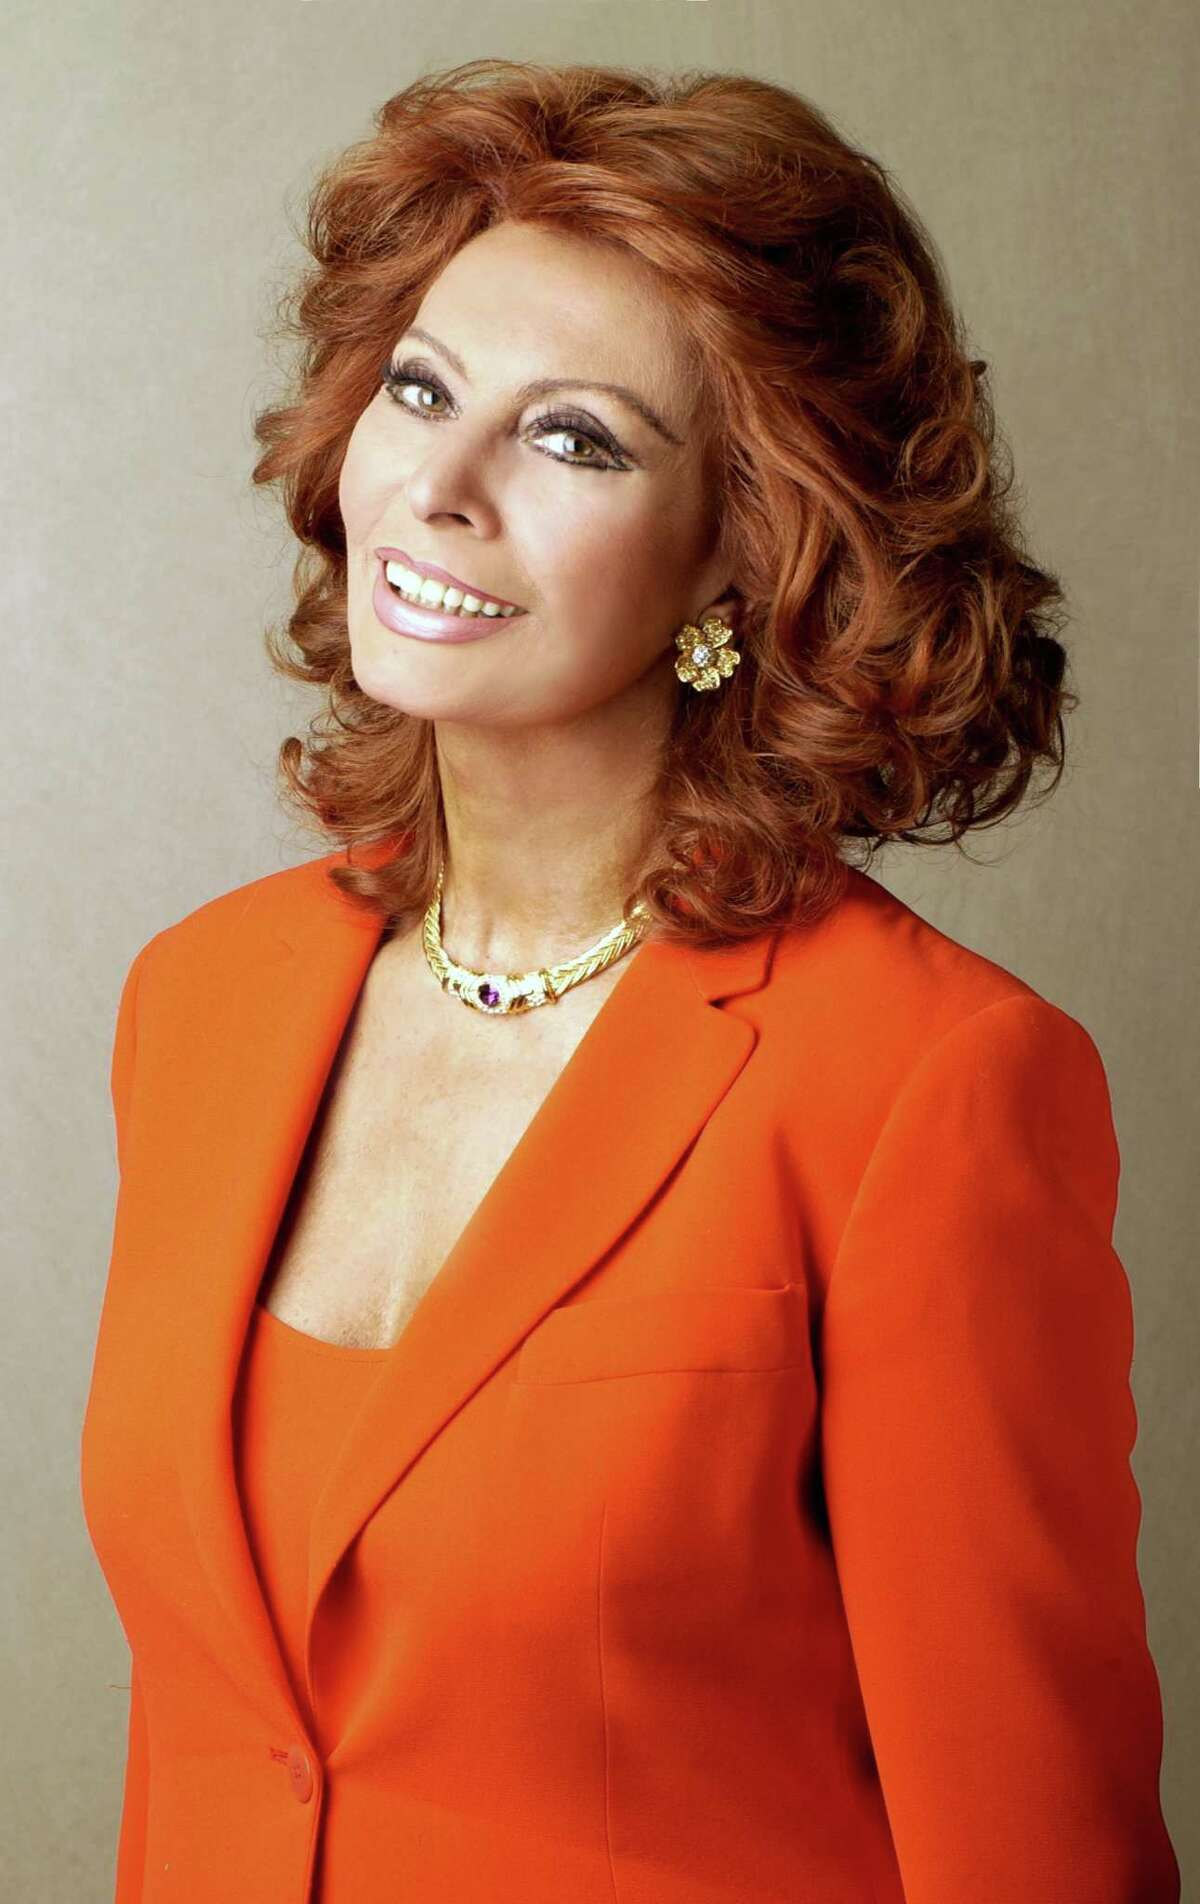 Sophia Loren: An Evening with an Icon is on Nov. 16 at 8 p.m. at the Ridgefield Playhouse, 80 East Ridge Road, Ridgefield. Tickets are $195-$250. For more information, visit ridgefieldplayhouse.org.